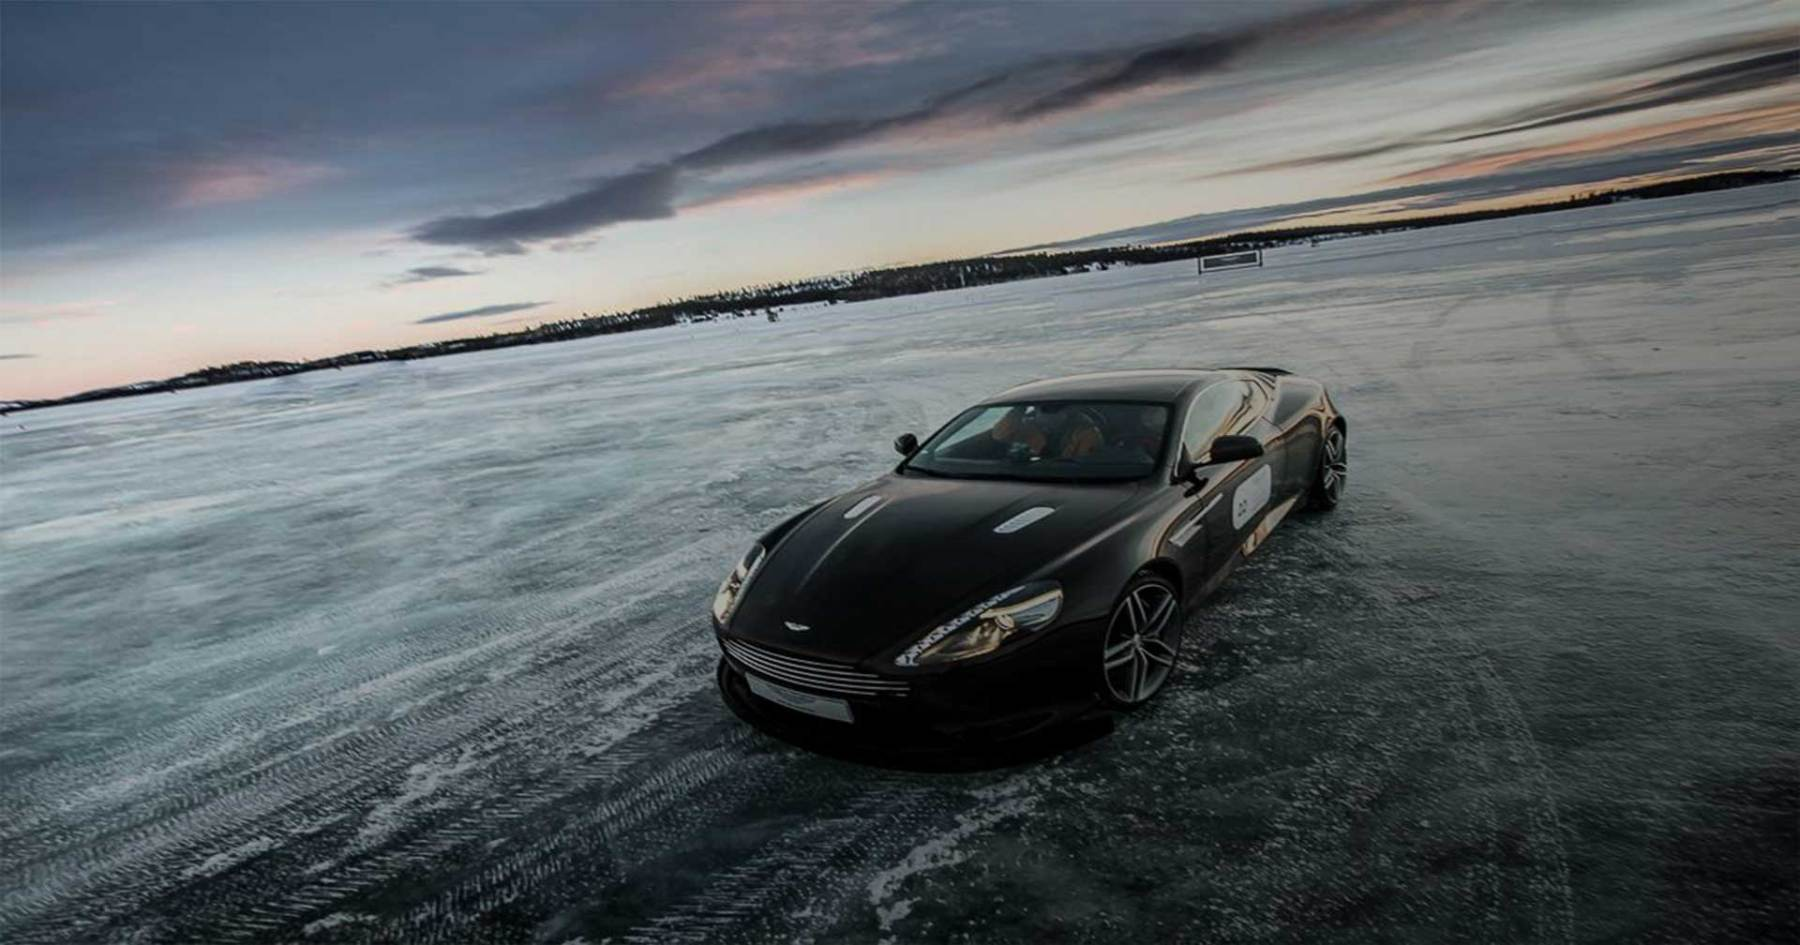 100 MPH in an Aston Martin. On Ice.